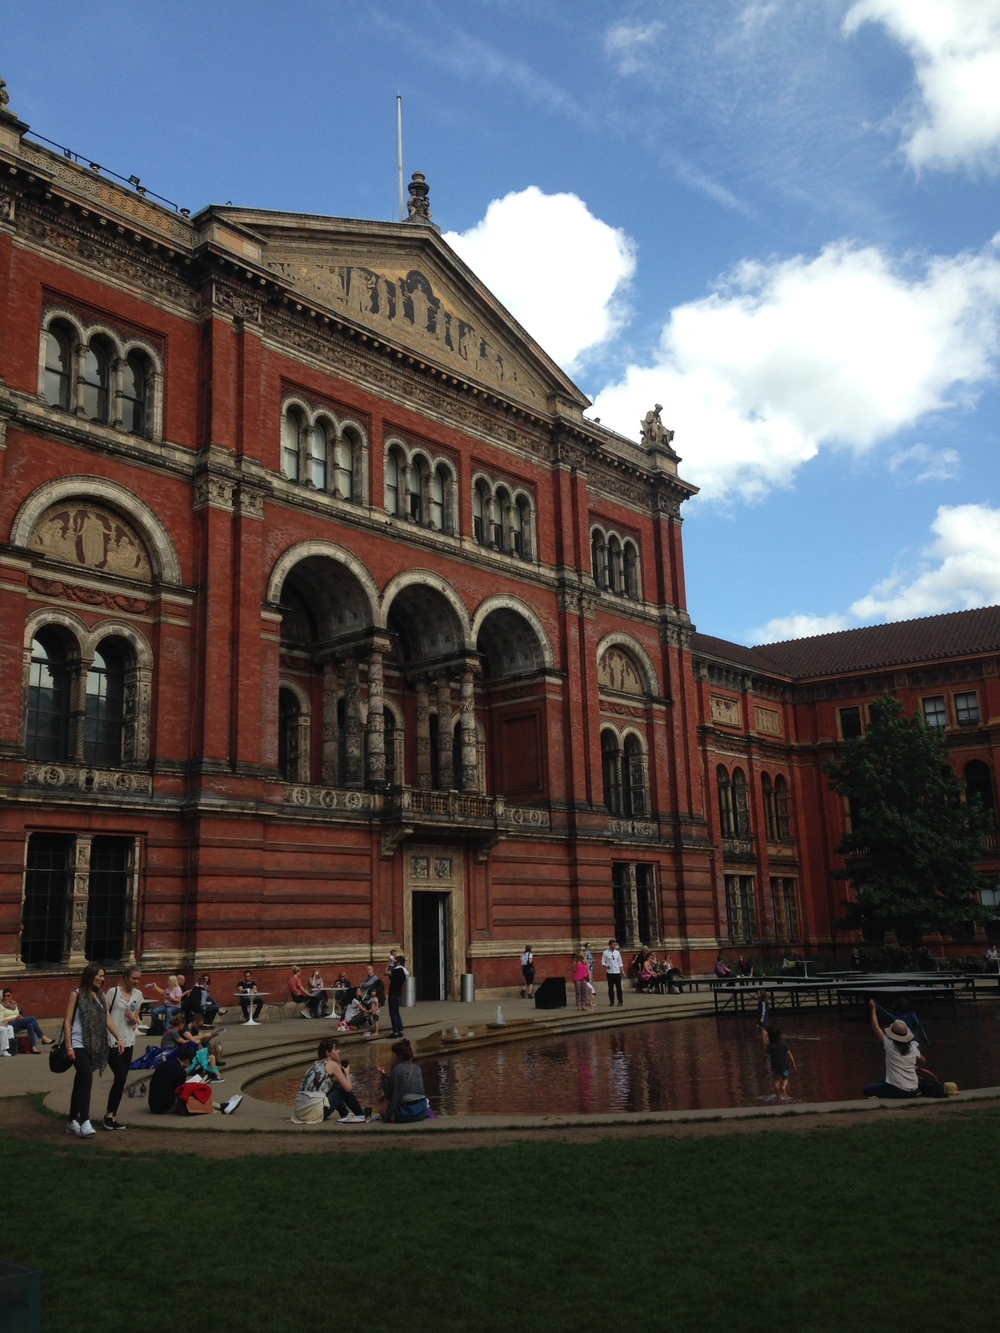 The courtyard at the V&A Museum, where they serve scones and sandwiches...all very civilised!